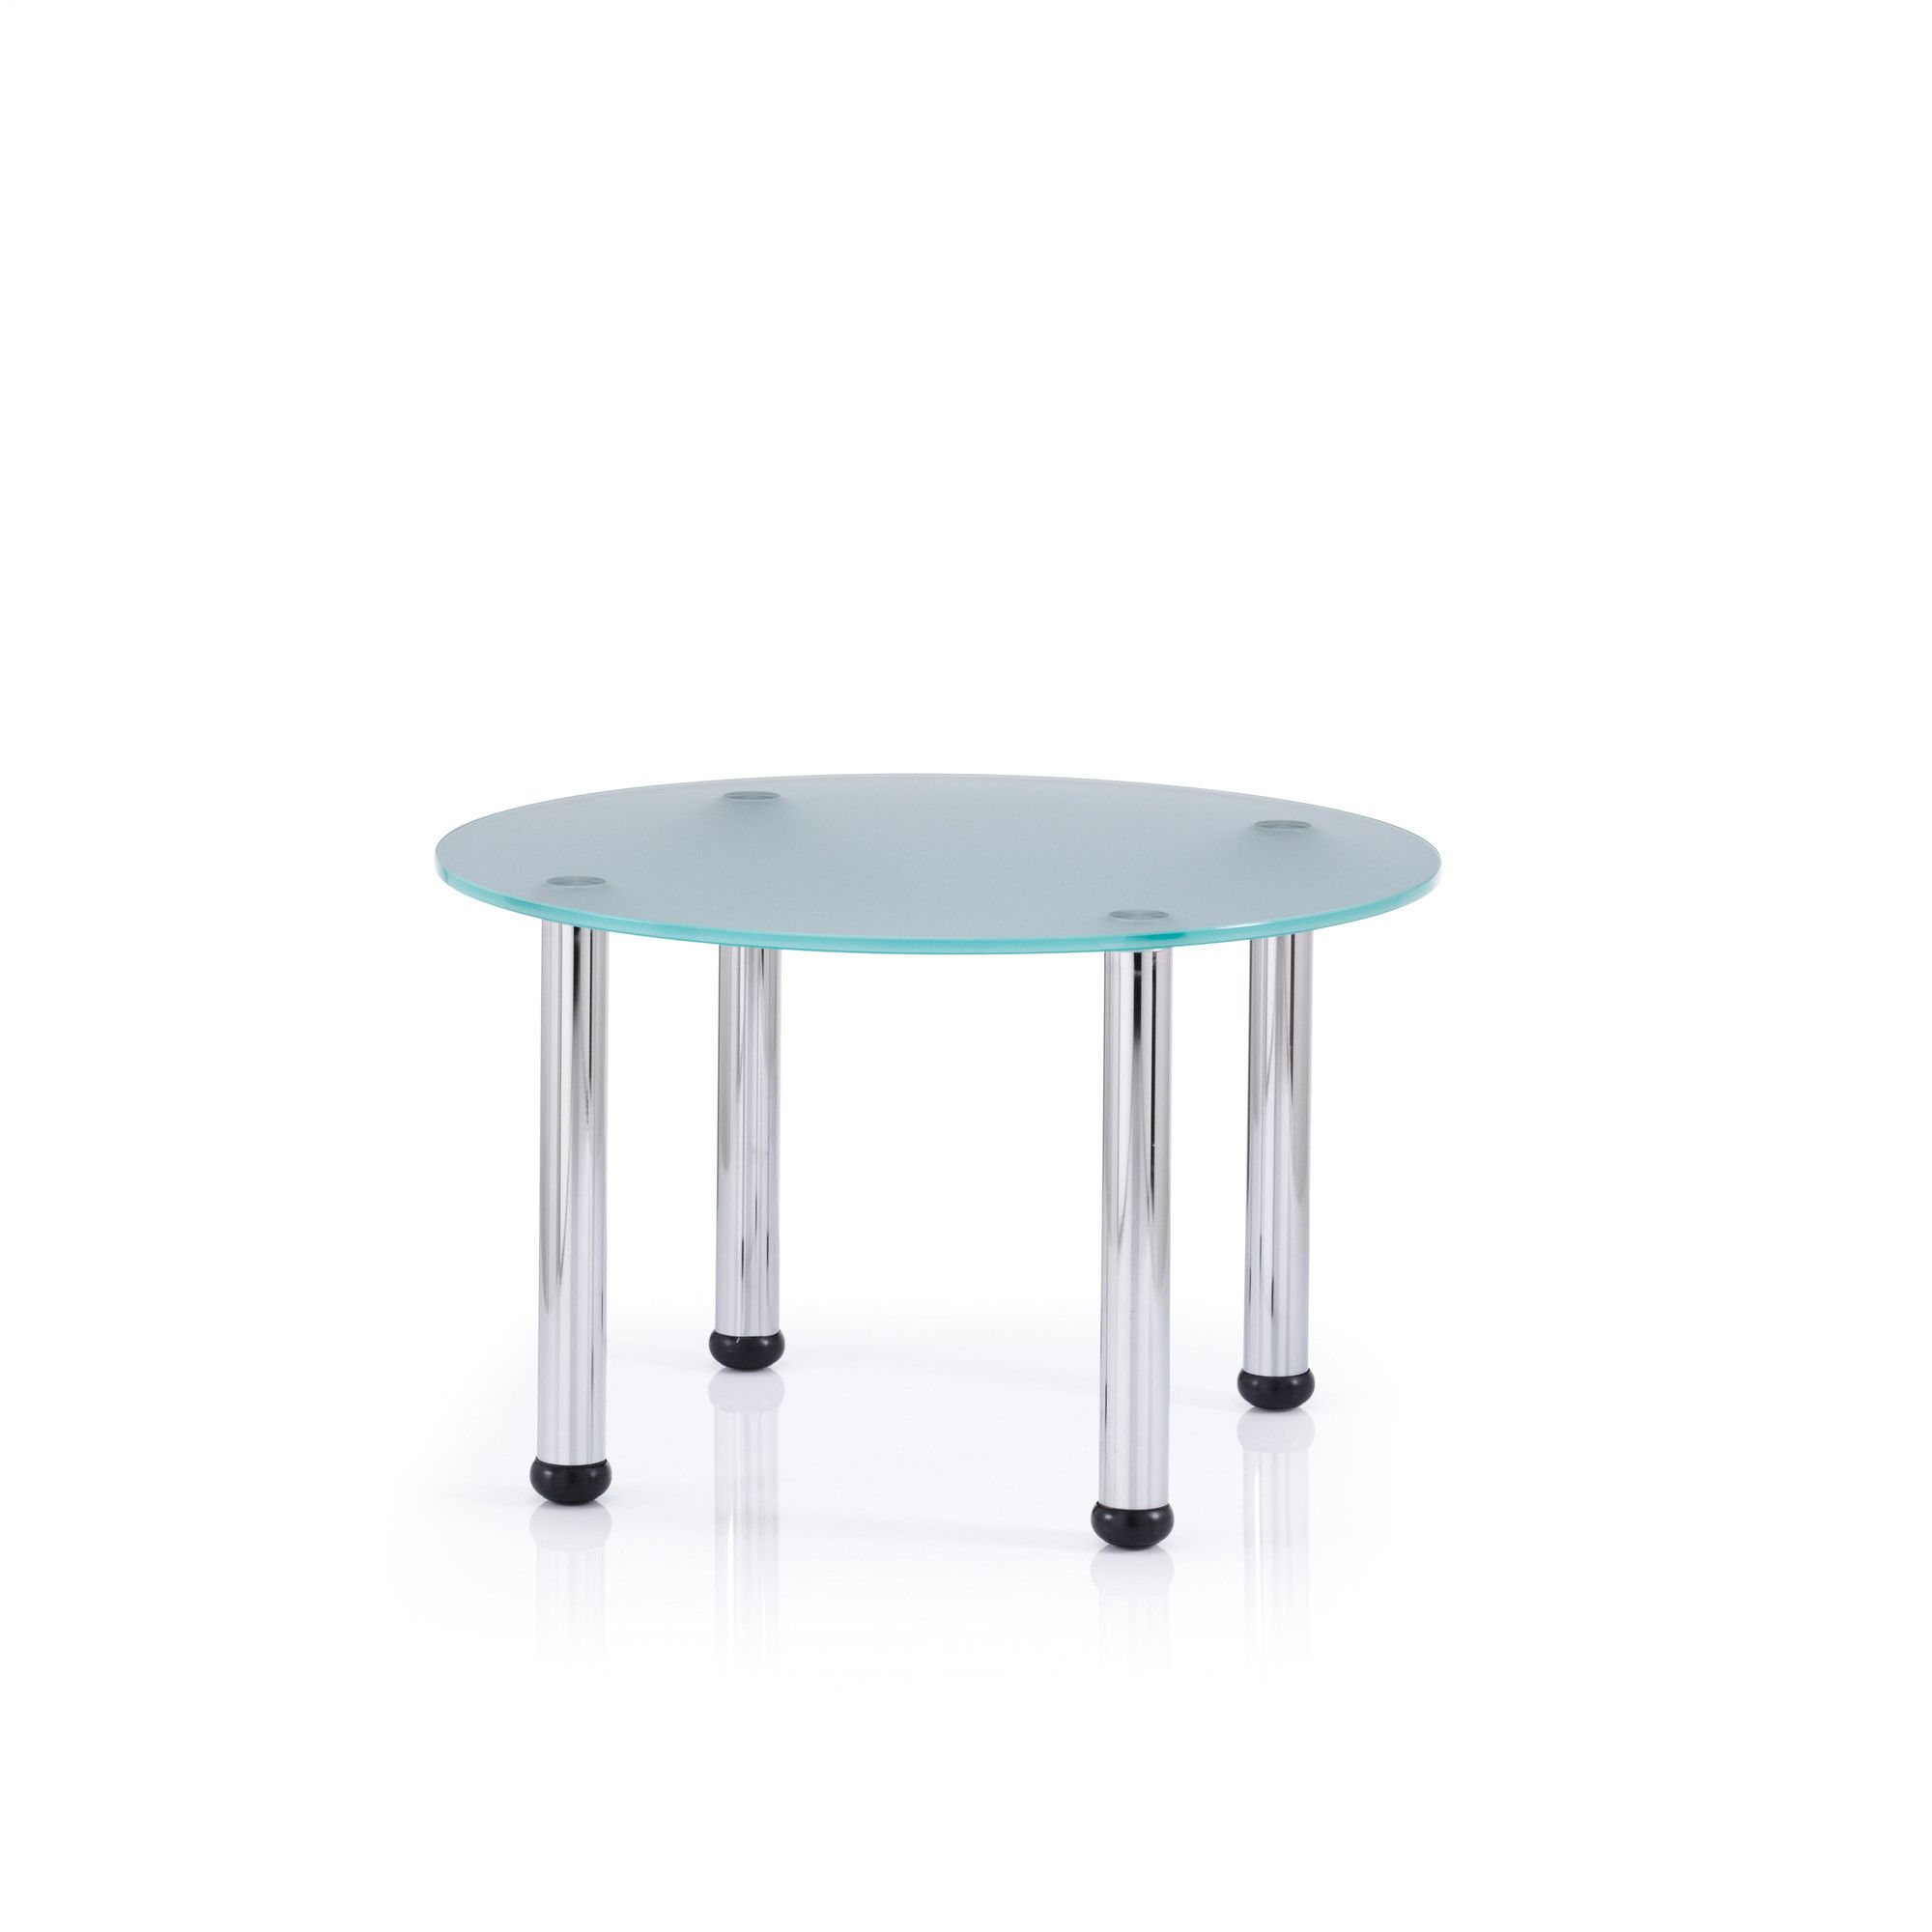 Ocee Design GT Small Round Table at Tesco Direct